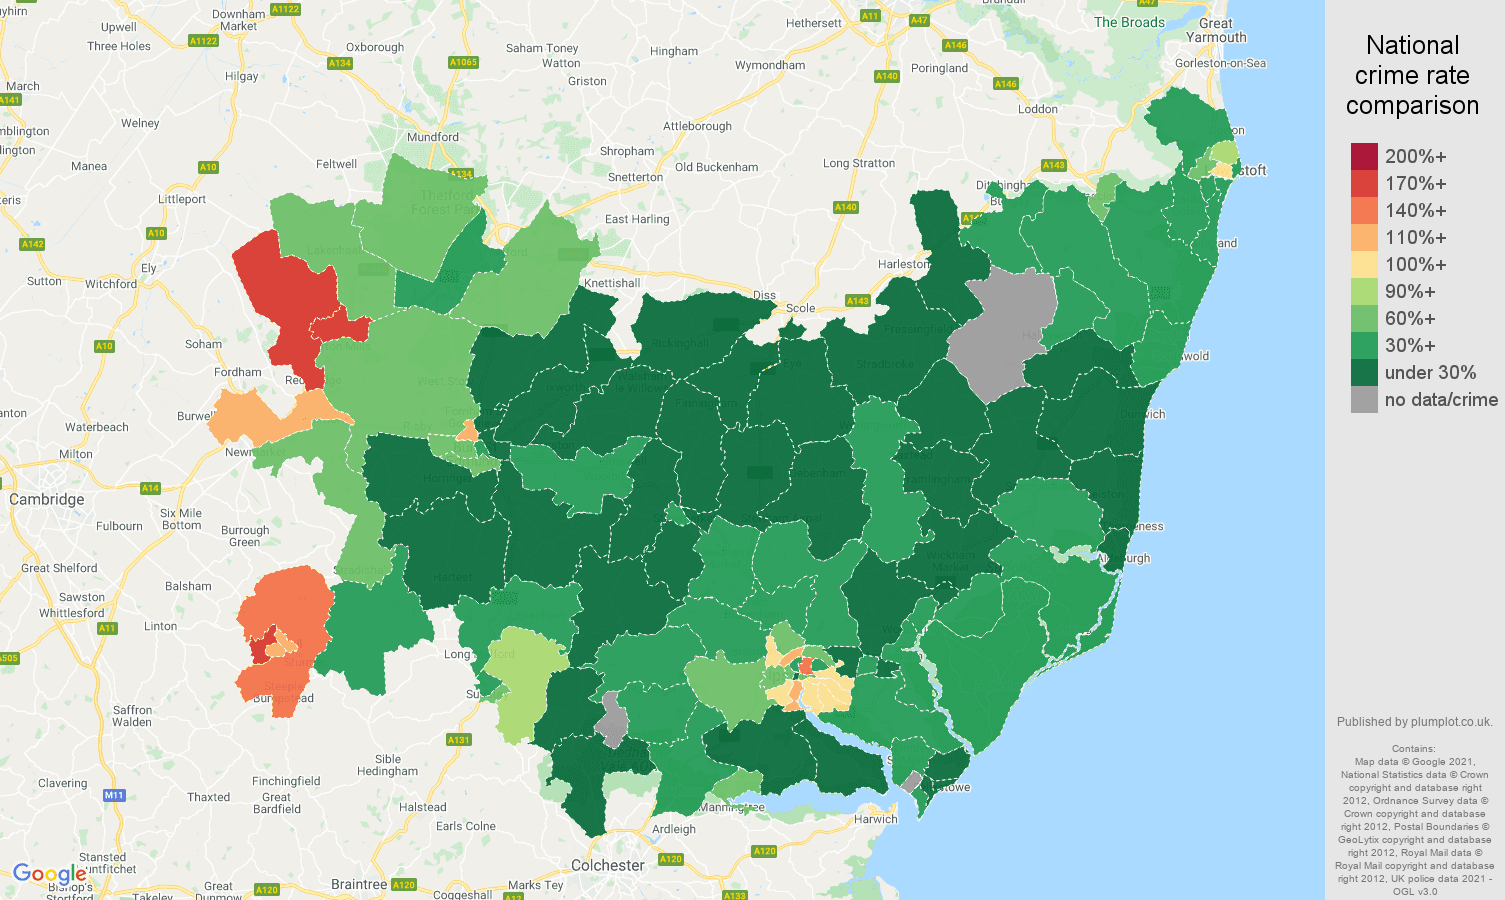 Suffolk vehicle crime rate comparison map